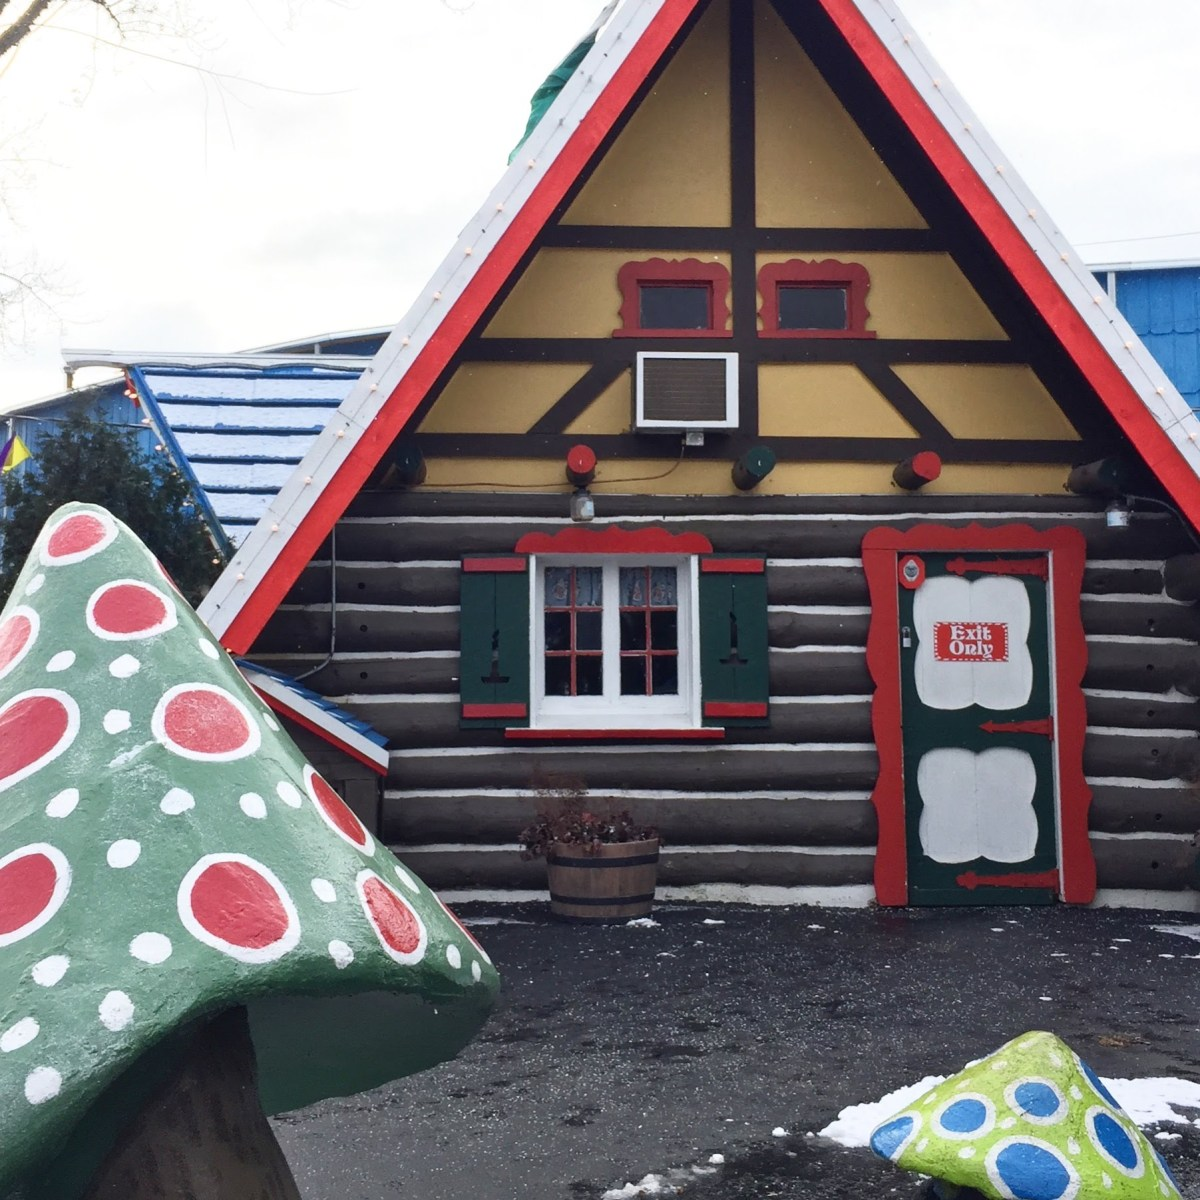 Family Holiday Fun: Magical Christmas at Santa's Village